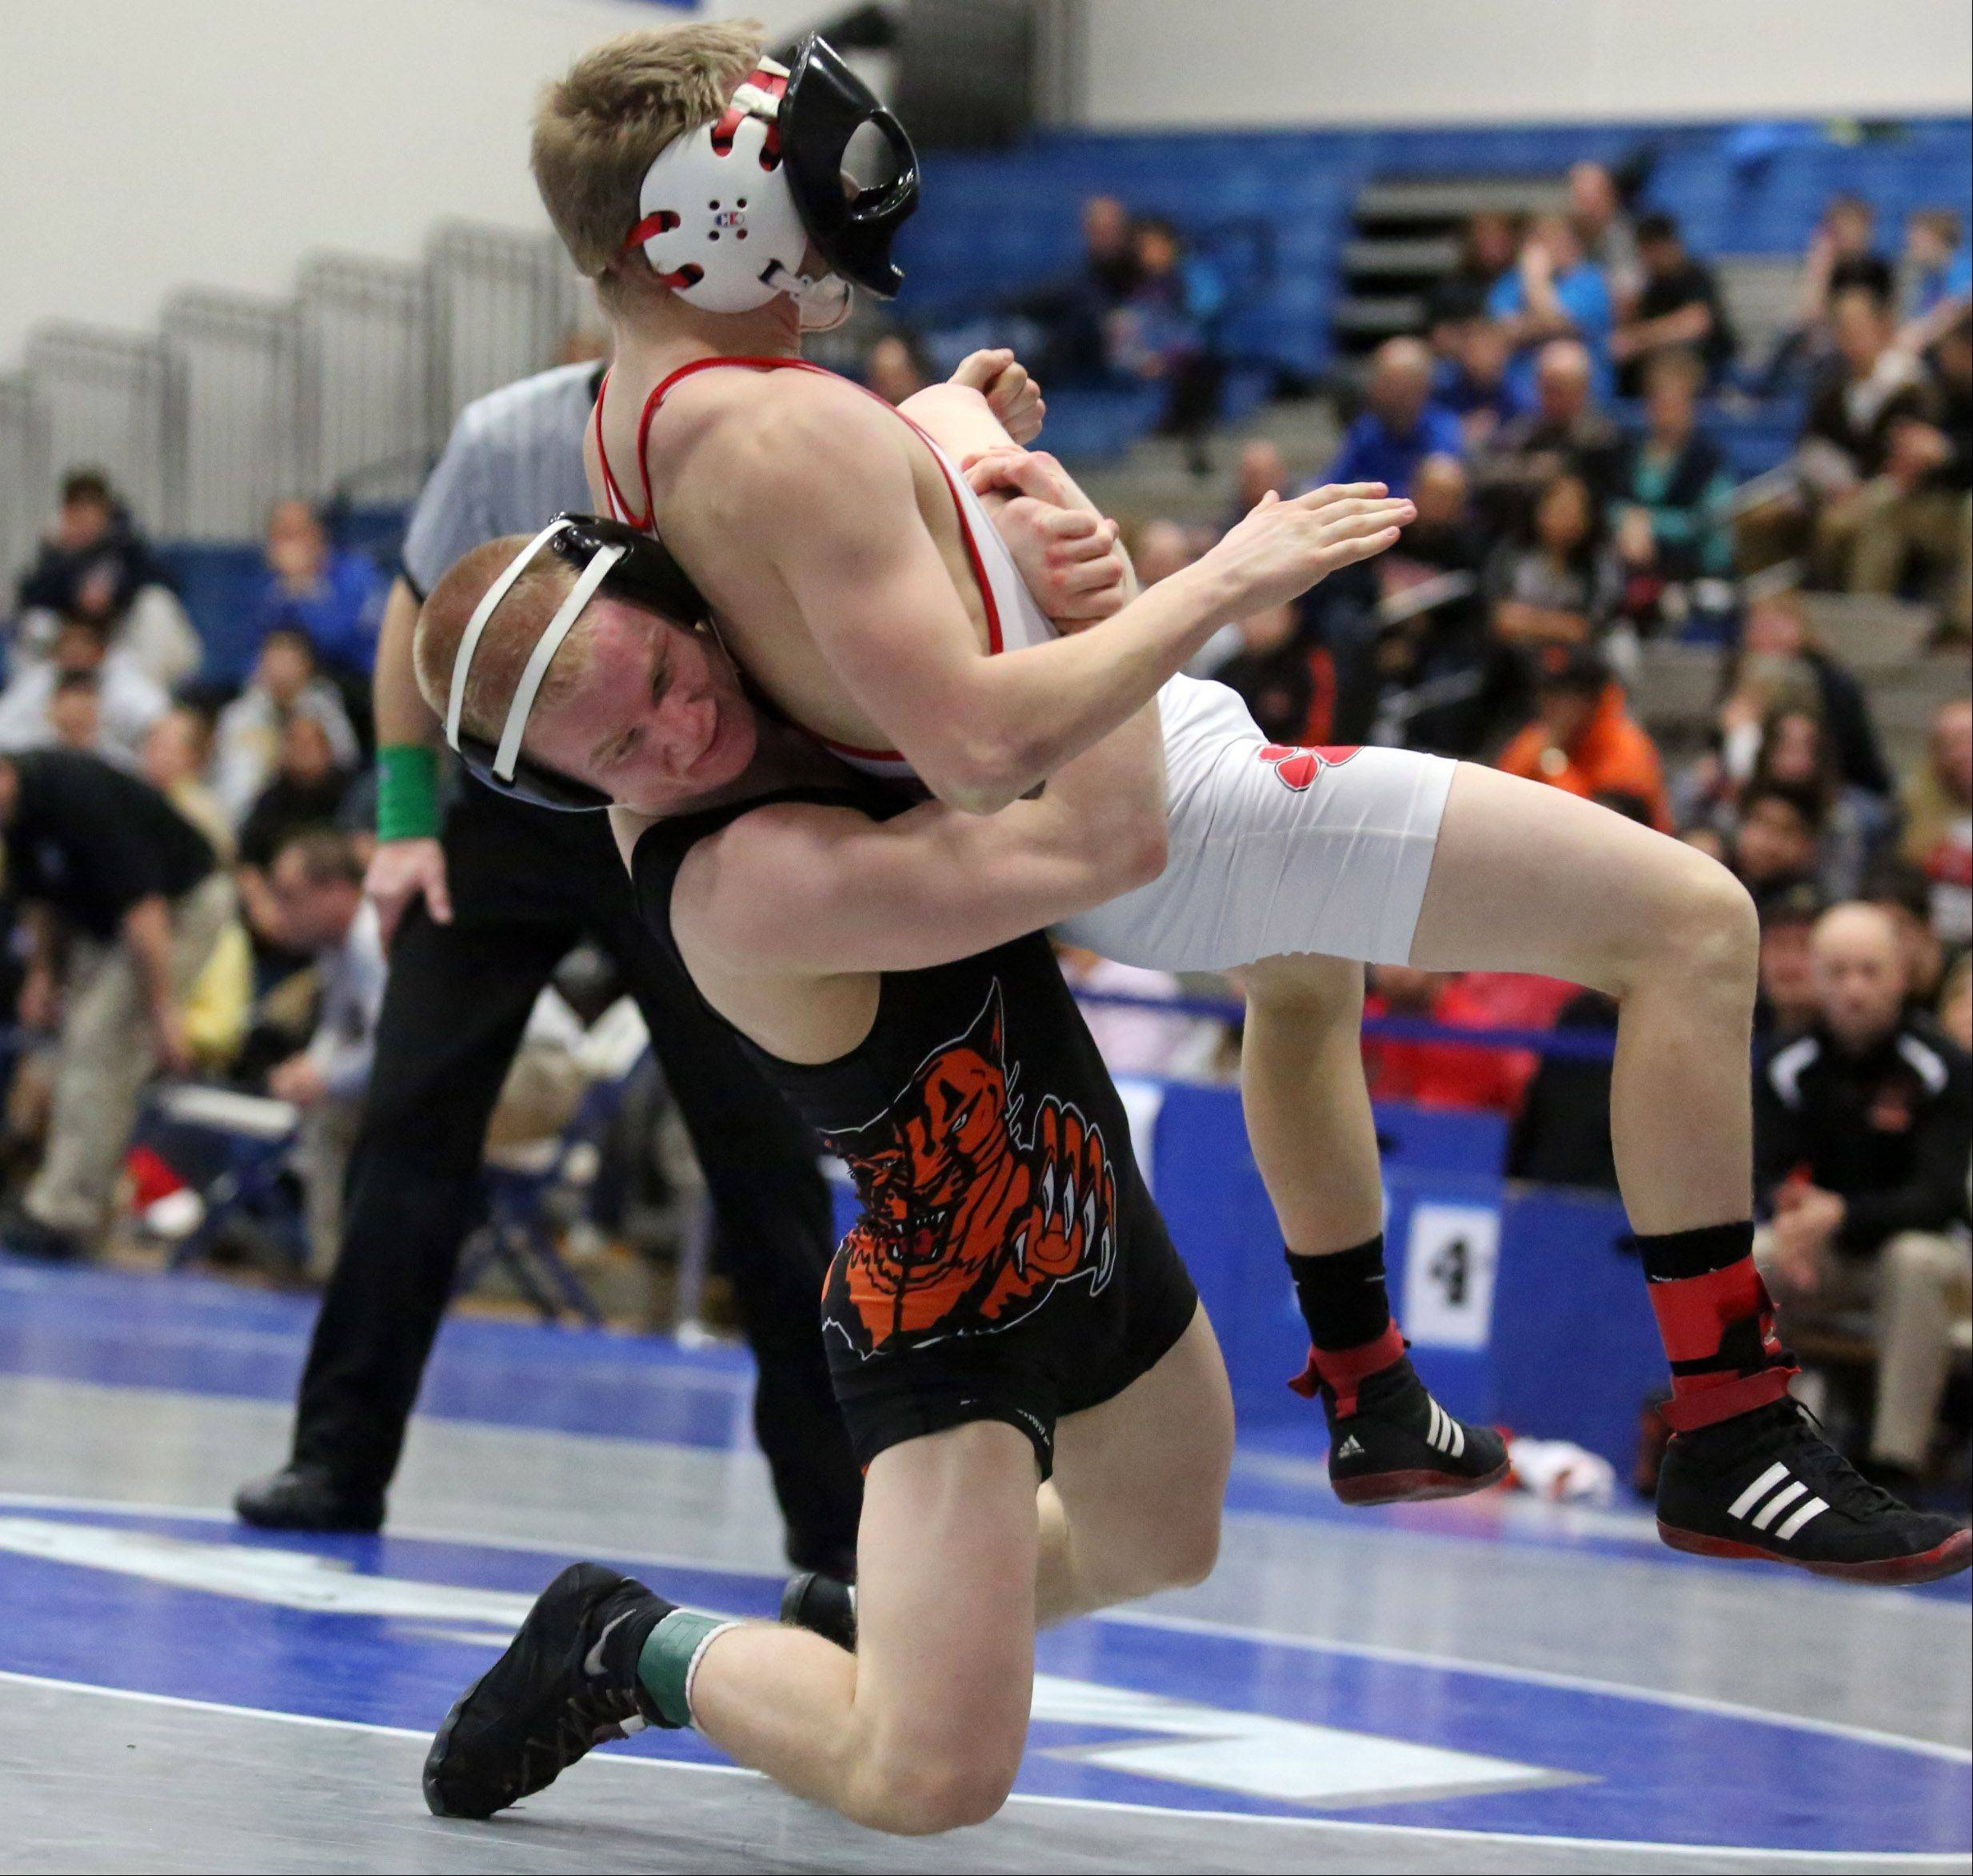 Libertyville's Steve Polakowski, left, wins the 126-pound final against Grant's Noah Drabek in the North Suburban Conference meet Saturday at Vernon Hills.